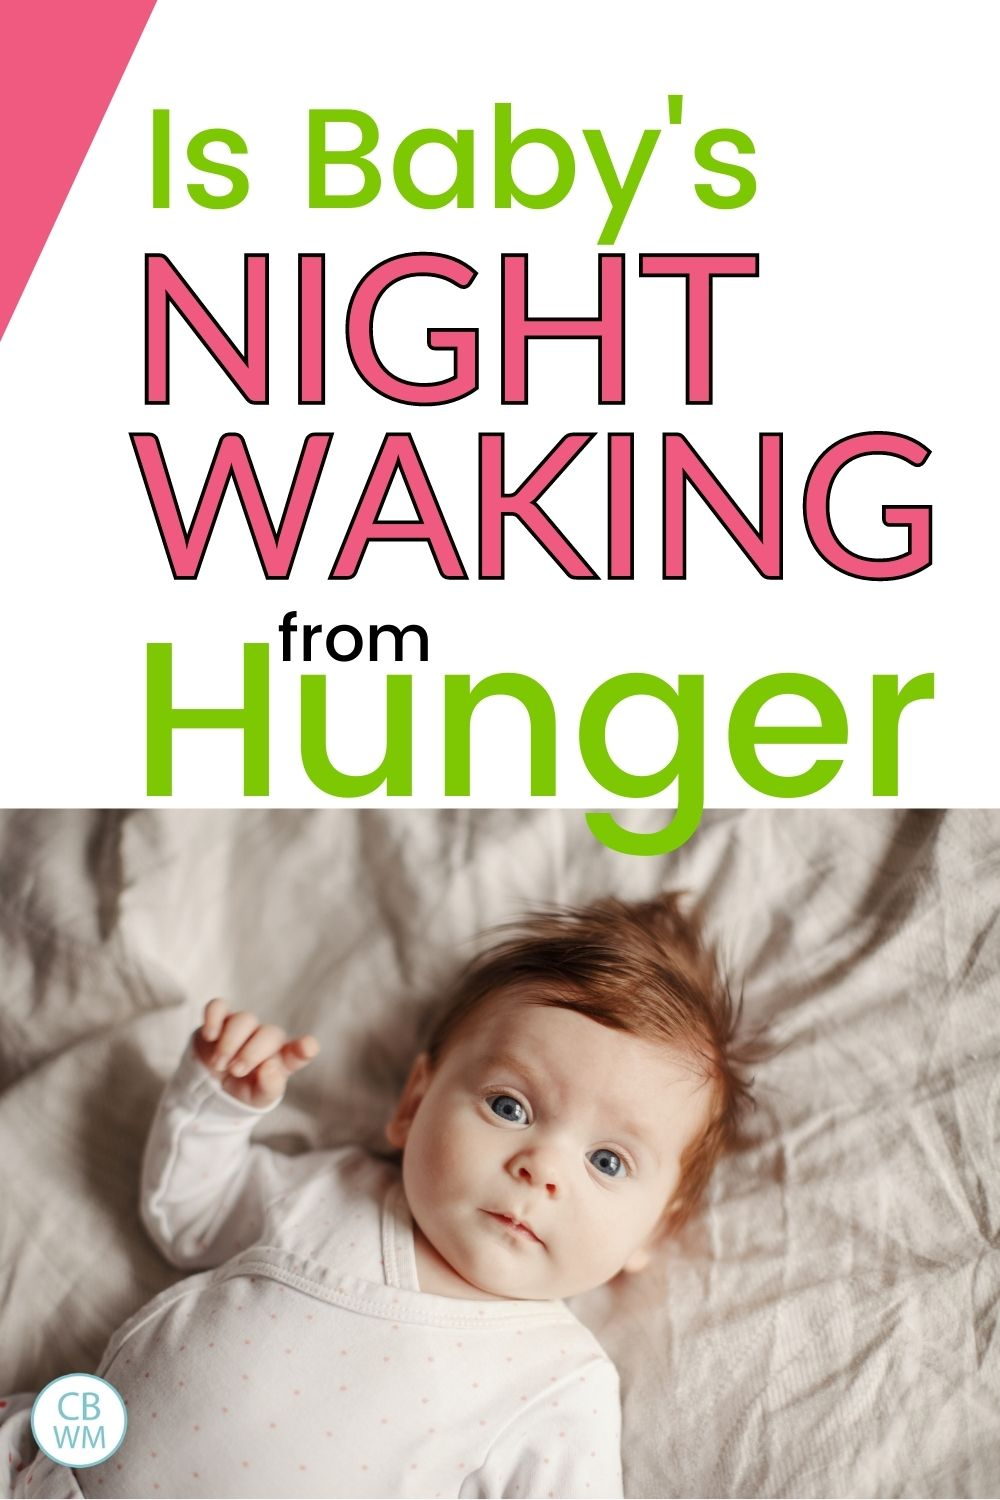 Is baby's night waking from hunger